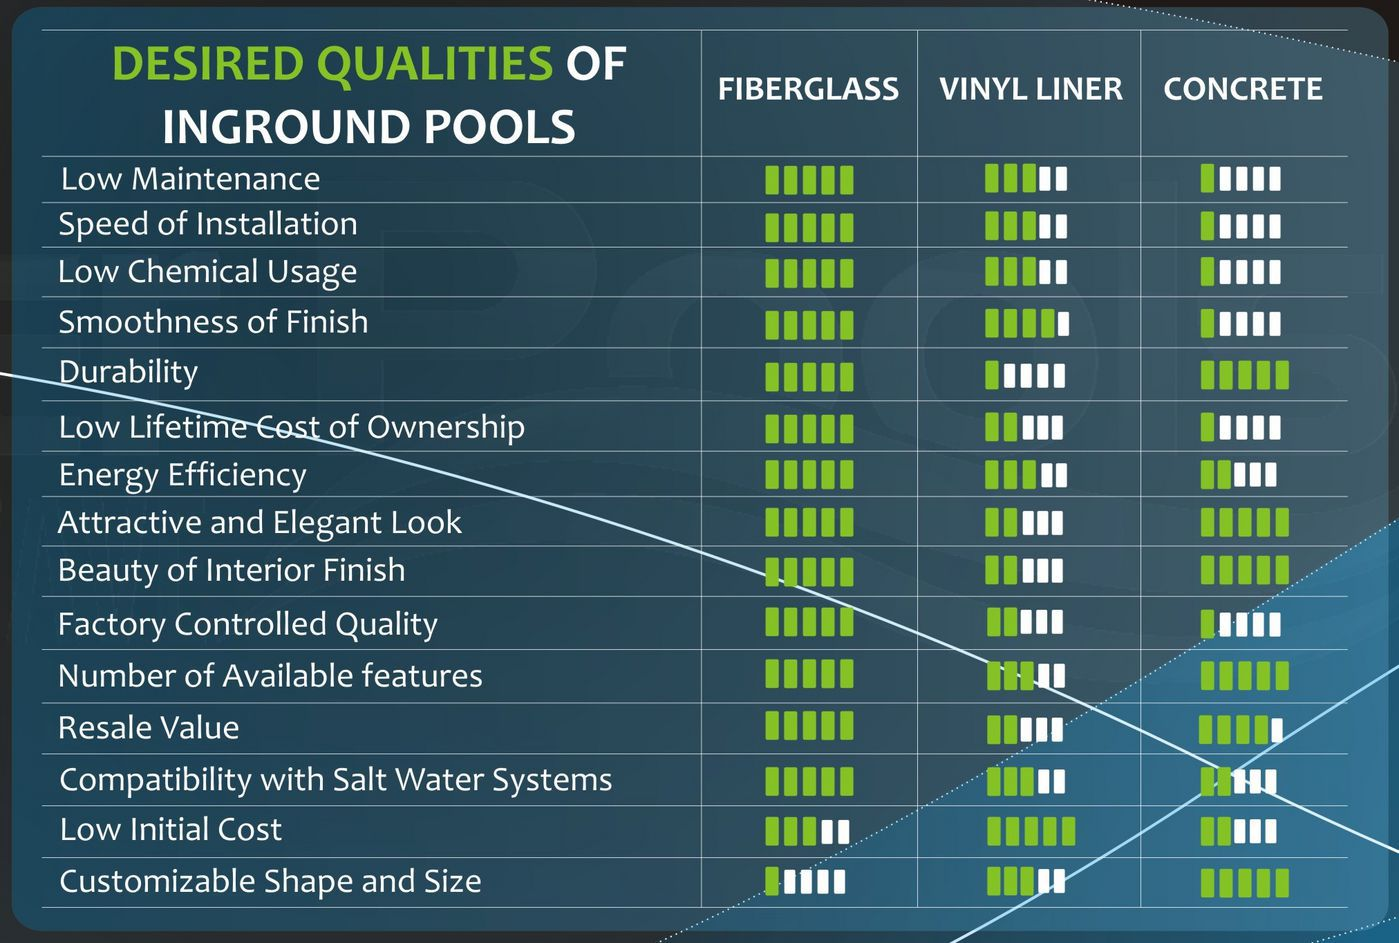 fiberglass vs concrete vs vinyl liner pool comparison chart